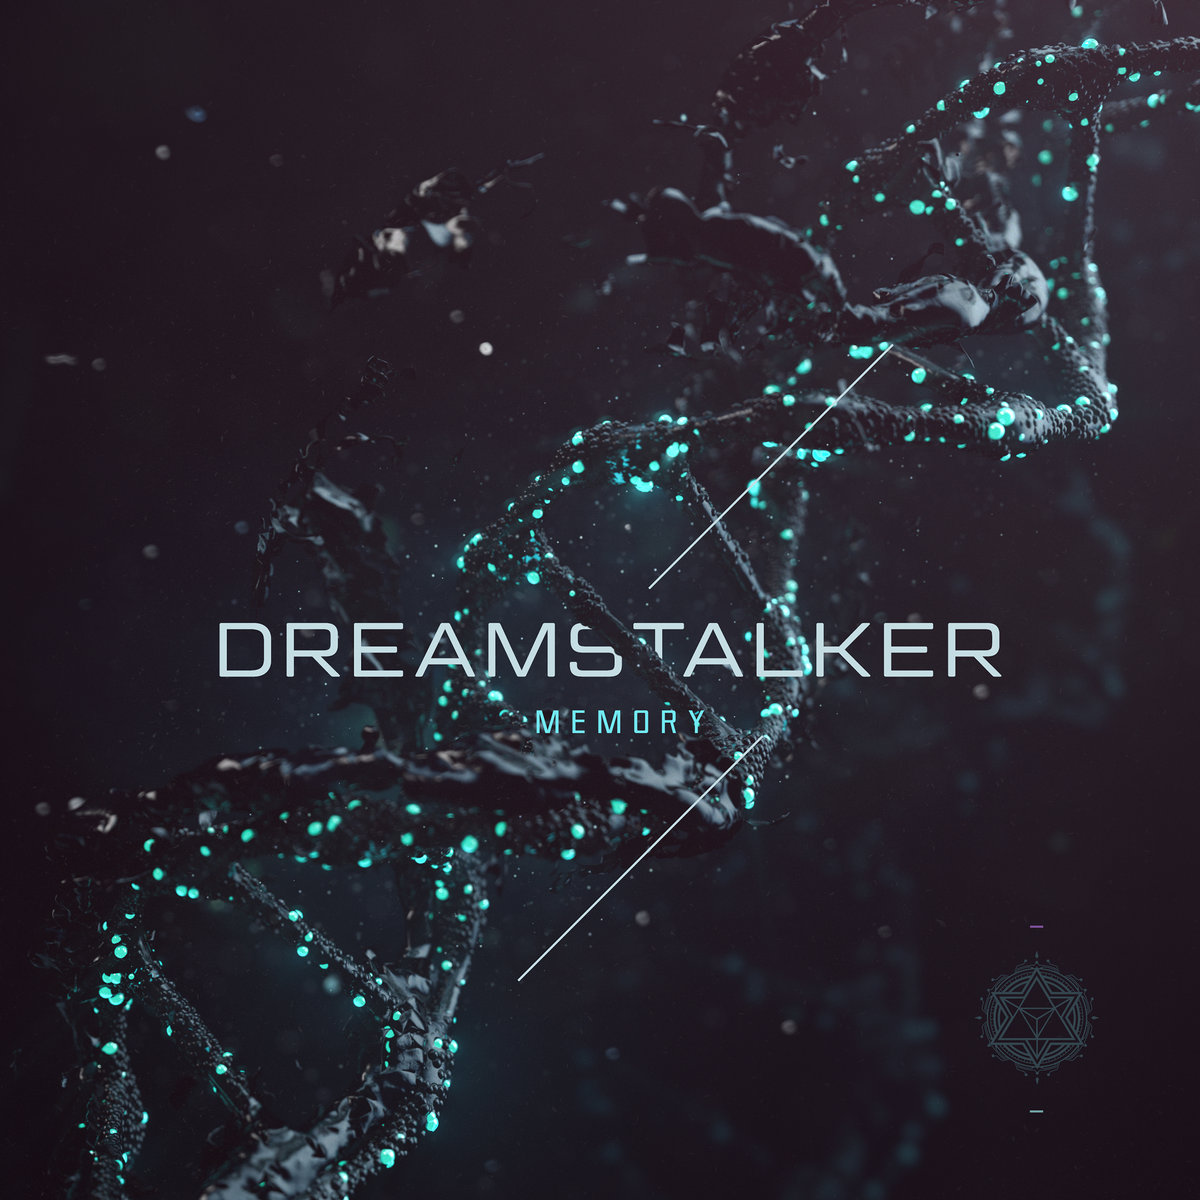 Dreamstalker - Memory (artwork)